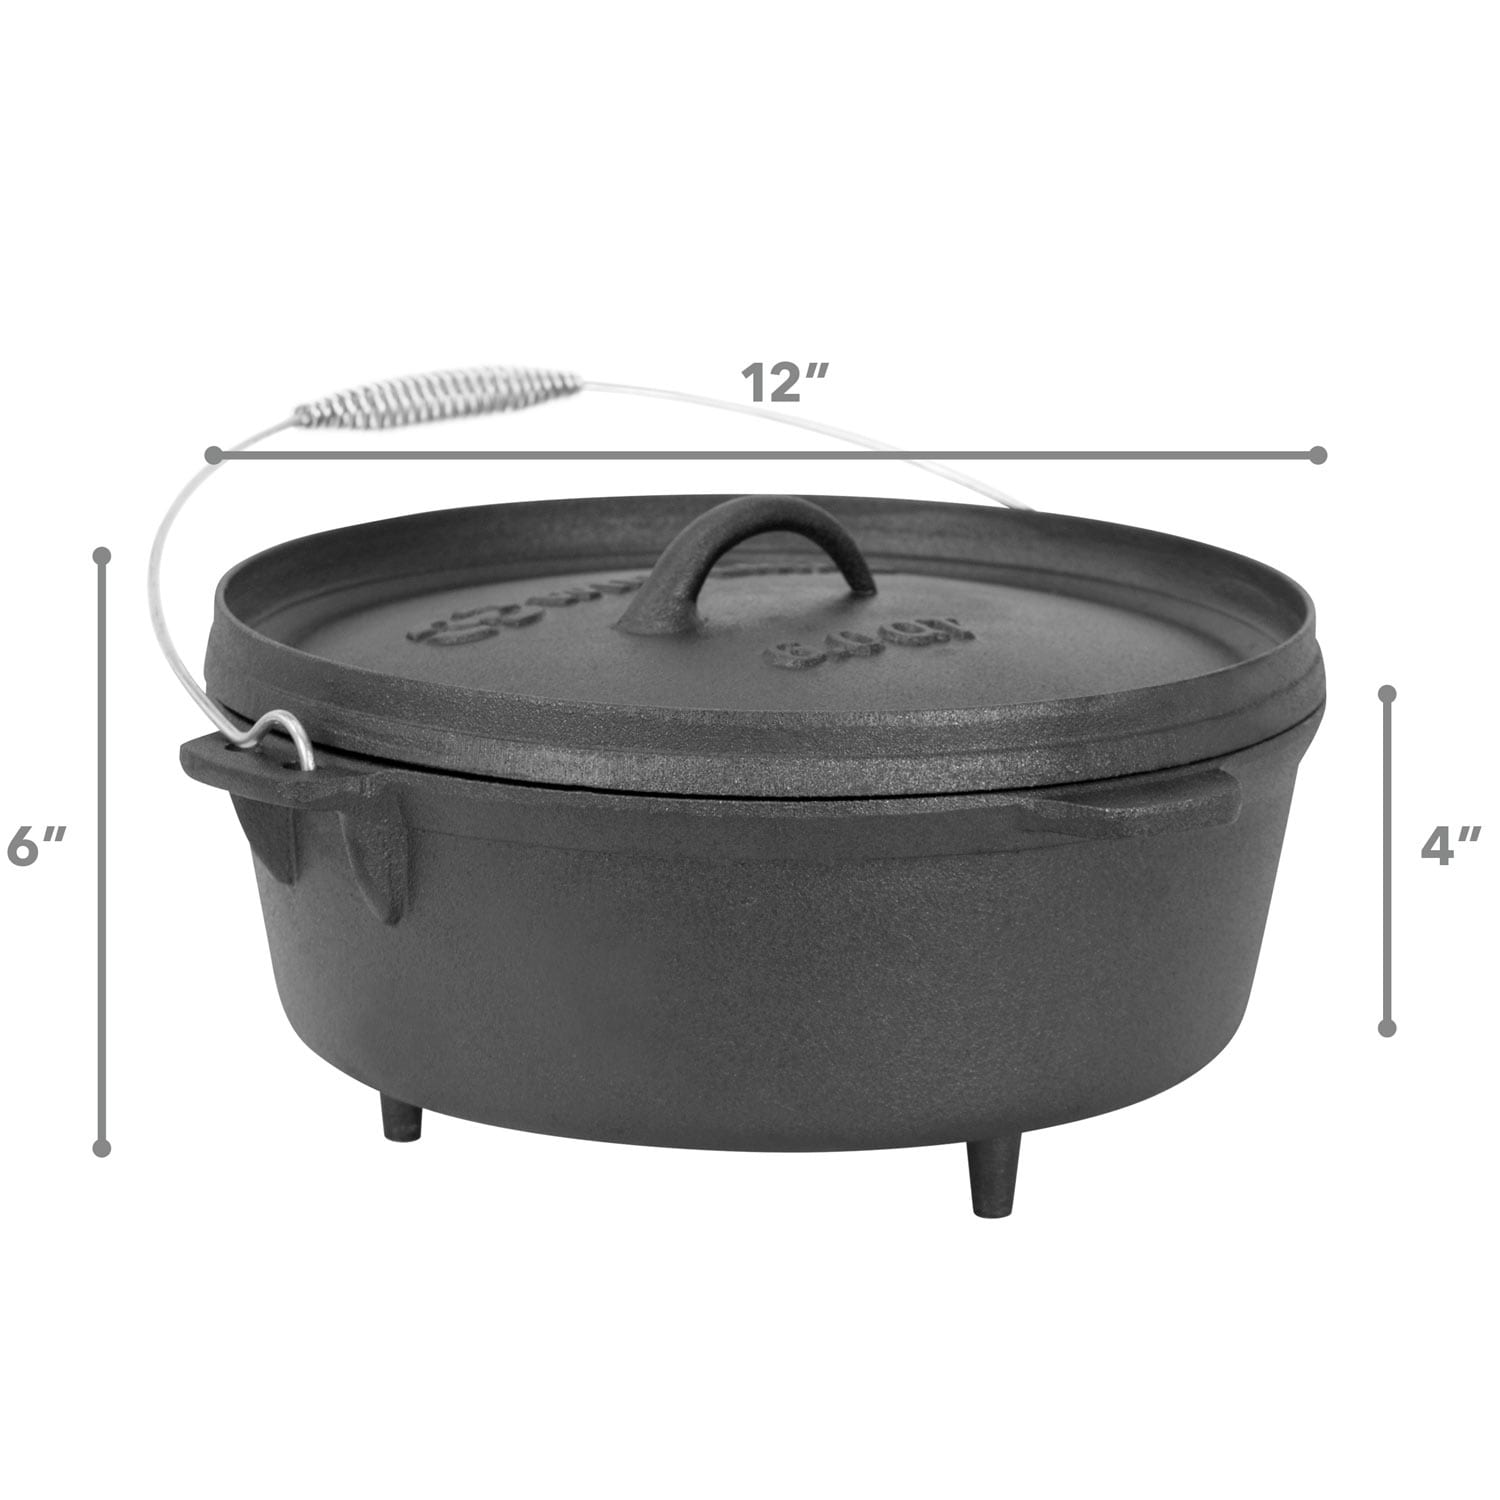 Winterial 6 Quart Cast Iron Camping Dutch Oven Camping Cookware Durable Cooking Overstock 11741240